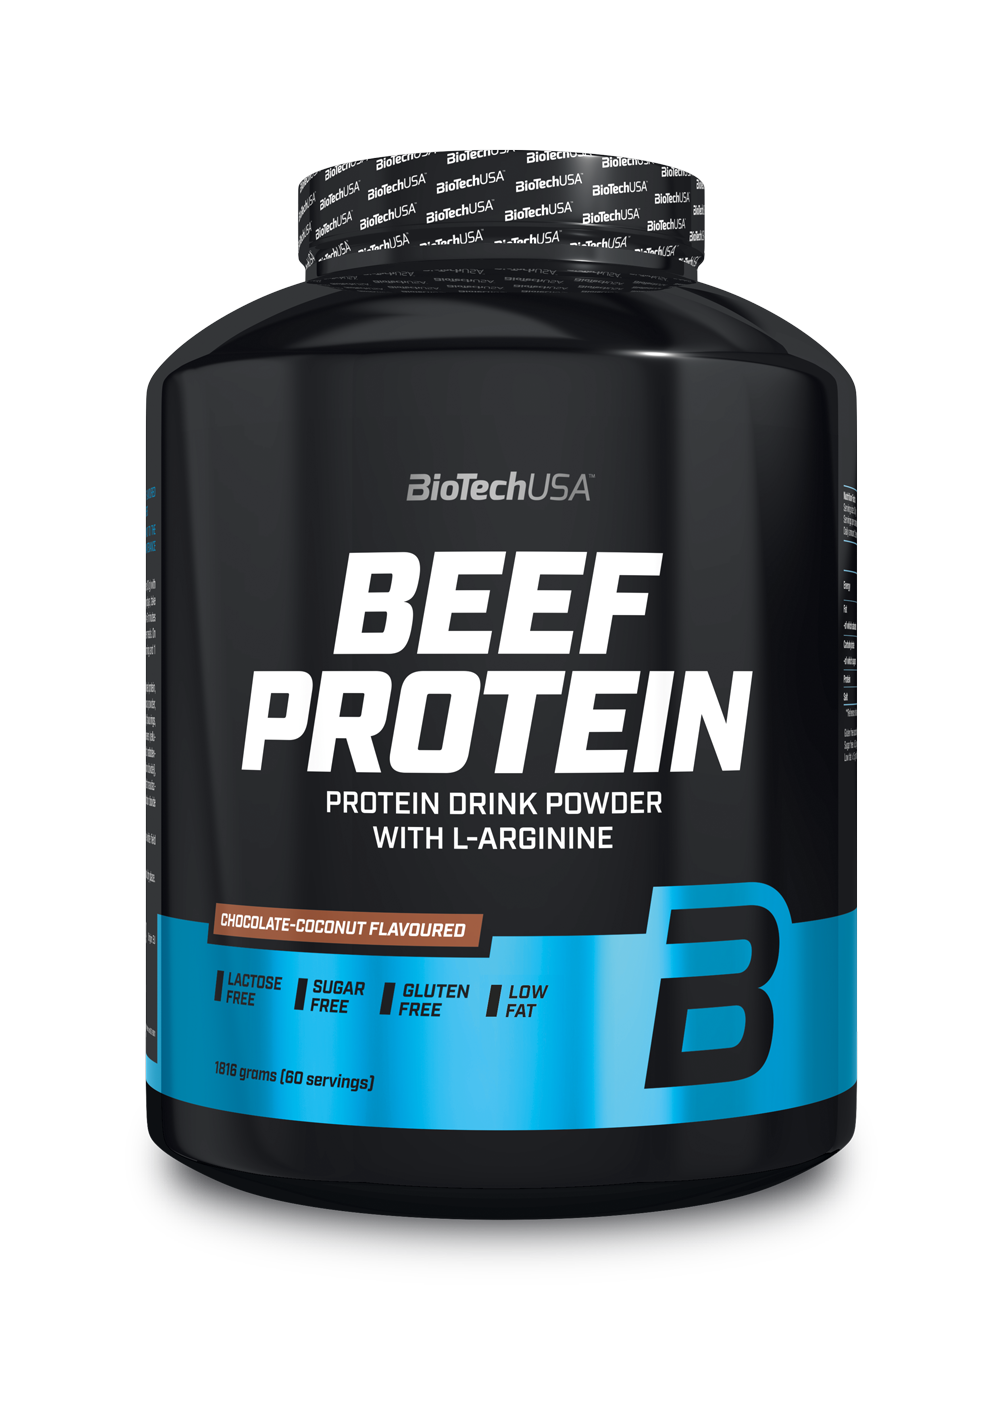 BioTech USA Beef Protein 1,816 kg